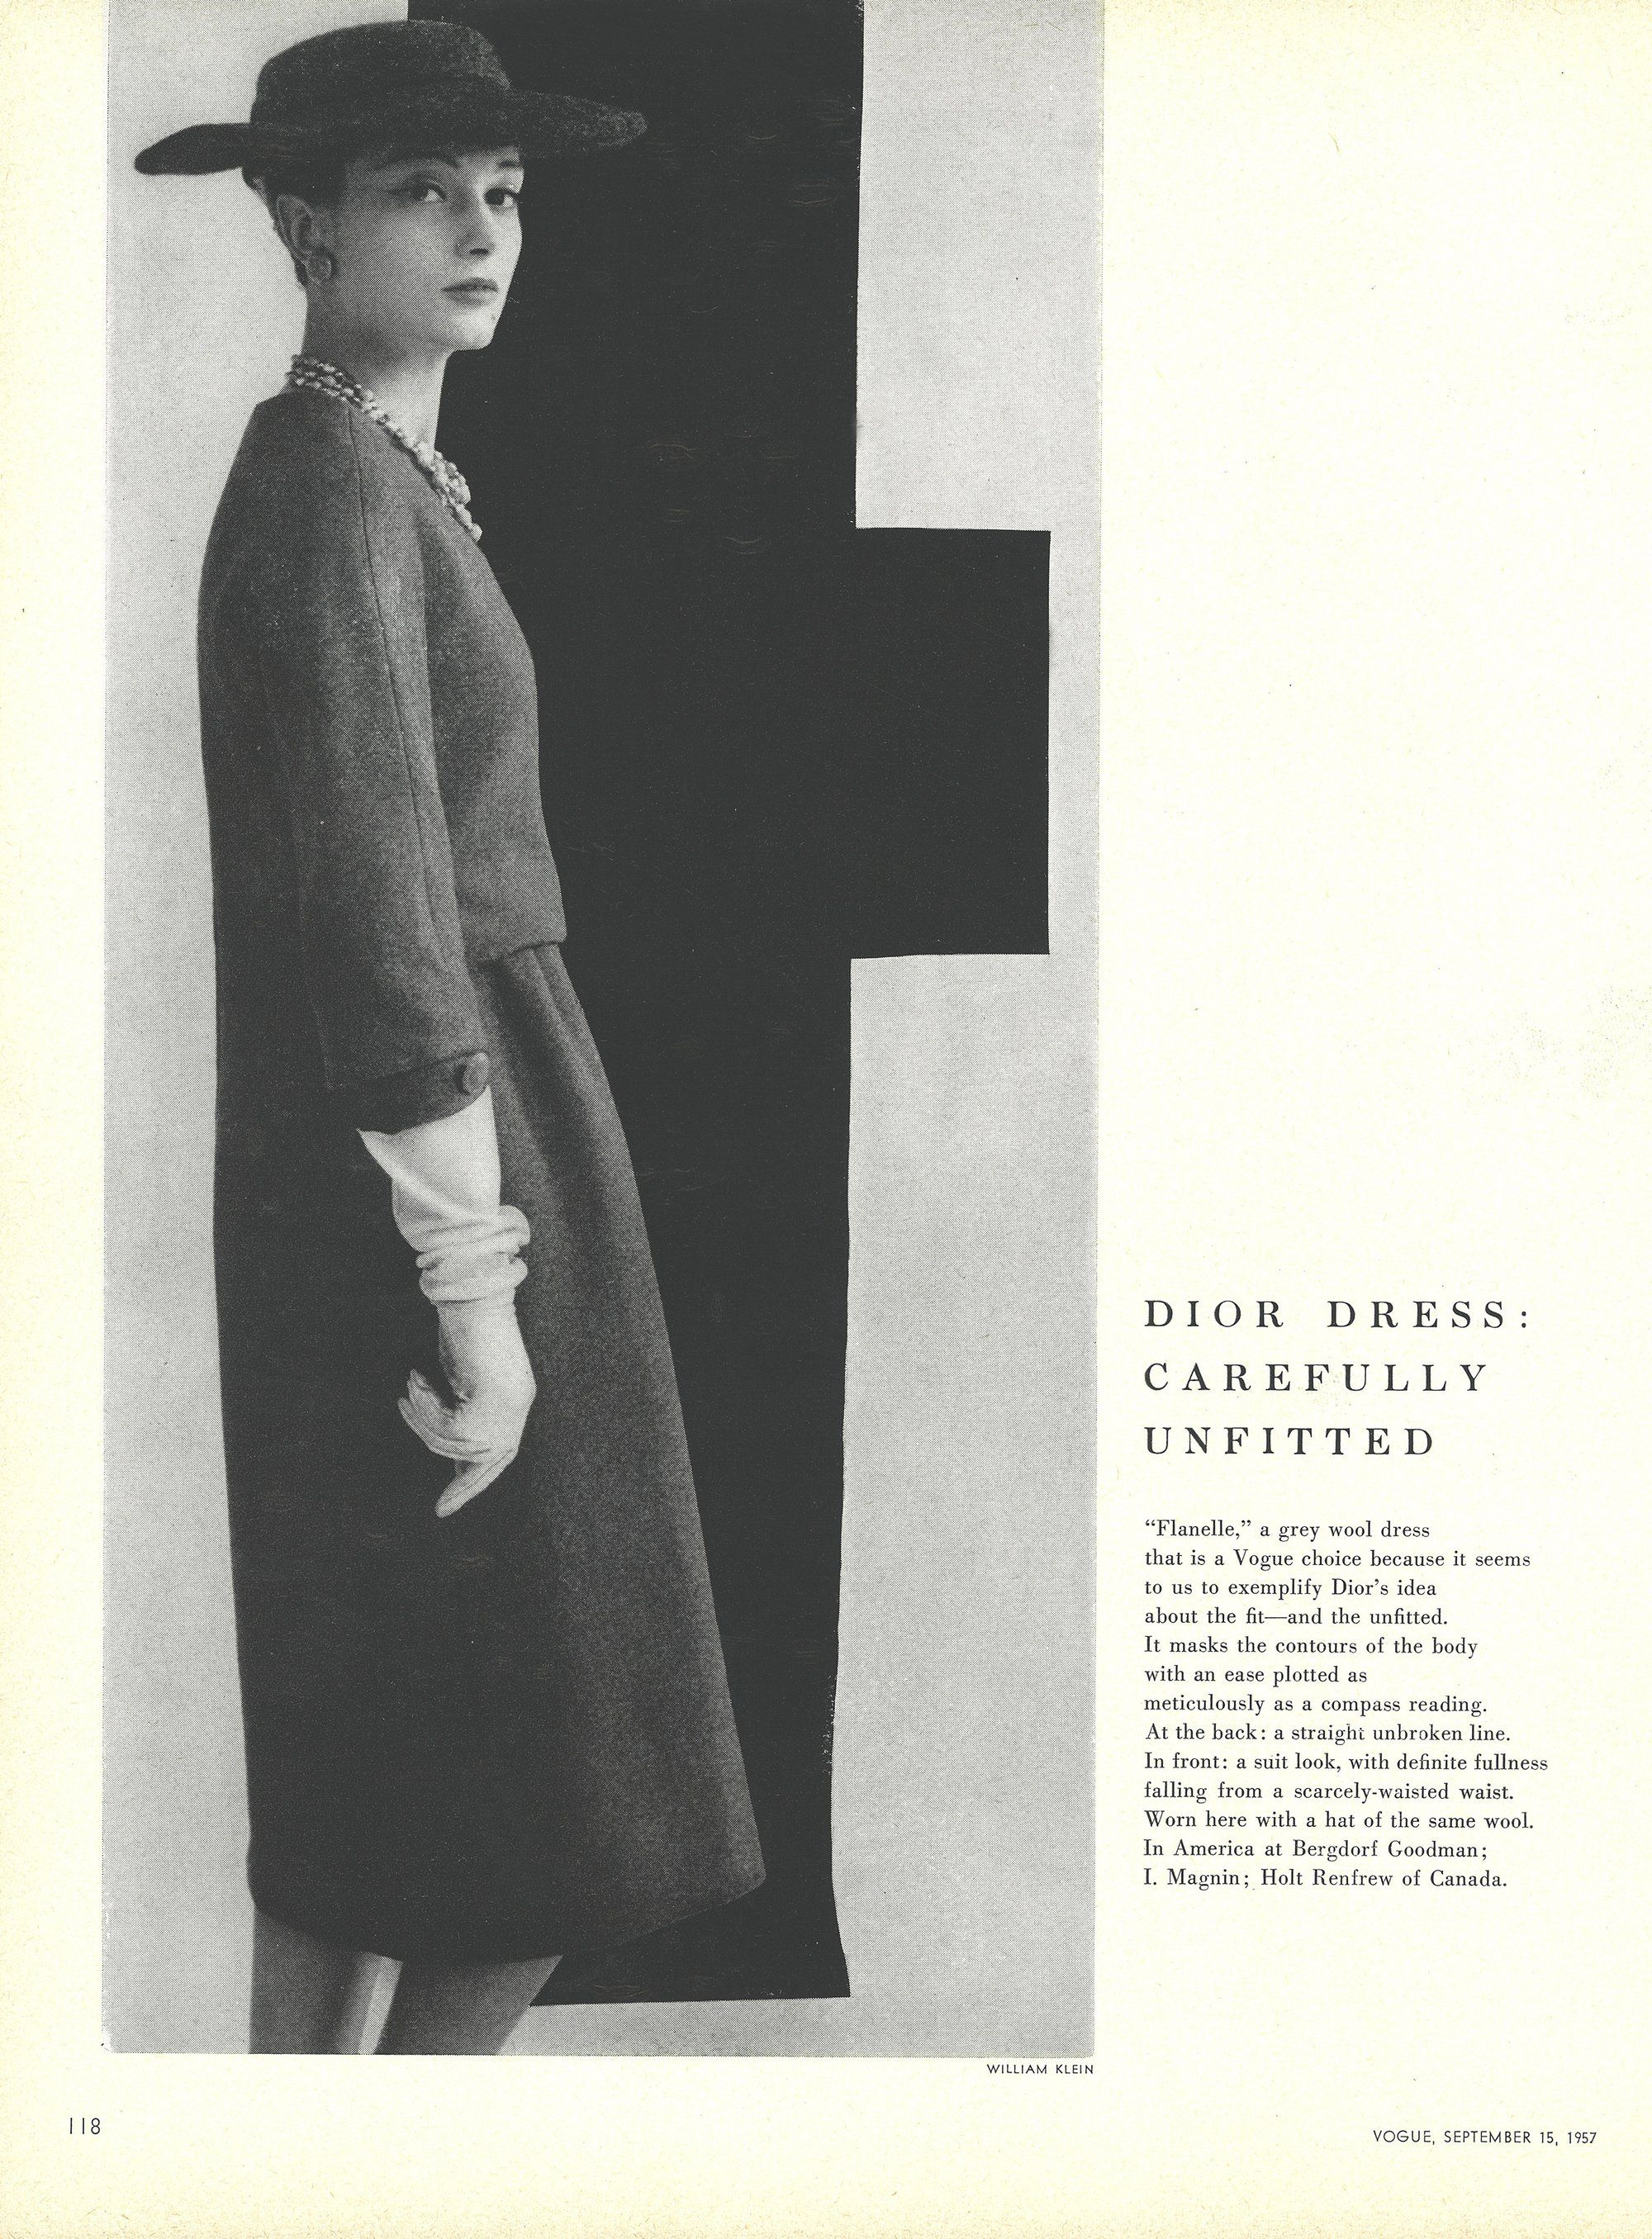 "Fall 1957 - The unfitted dress . . . ""masks the contours of the body with an ease as plotted as a compass reading."""